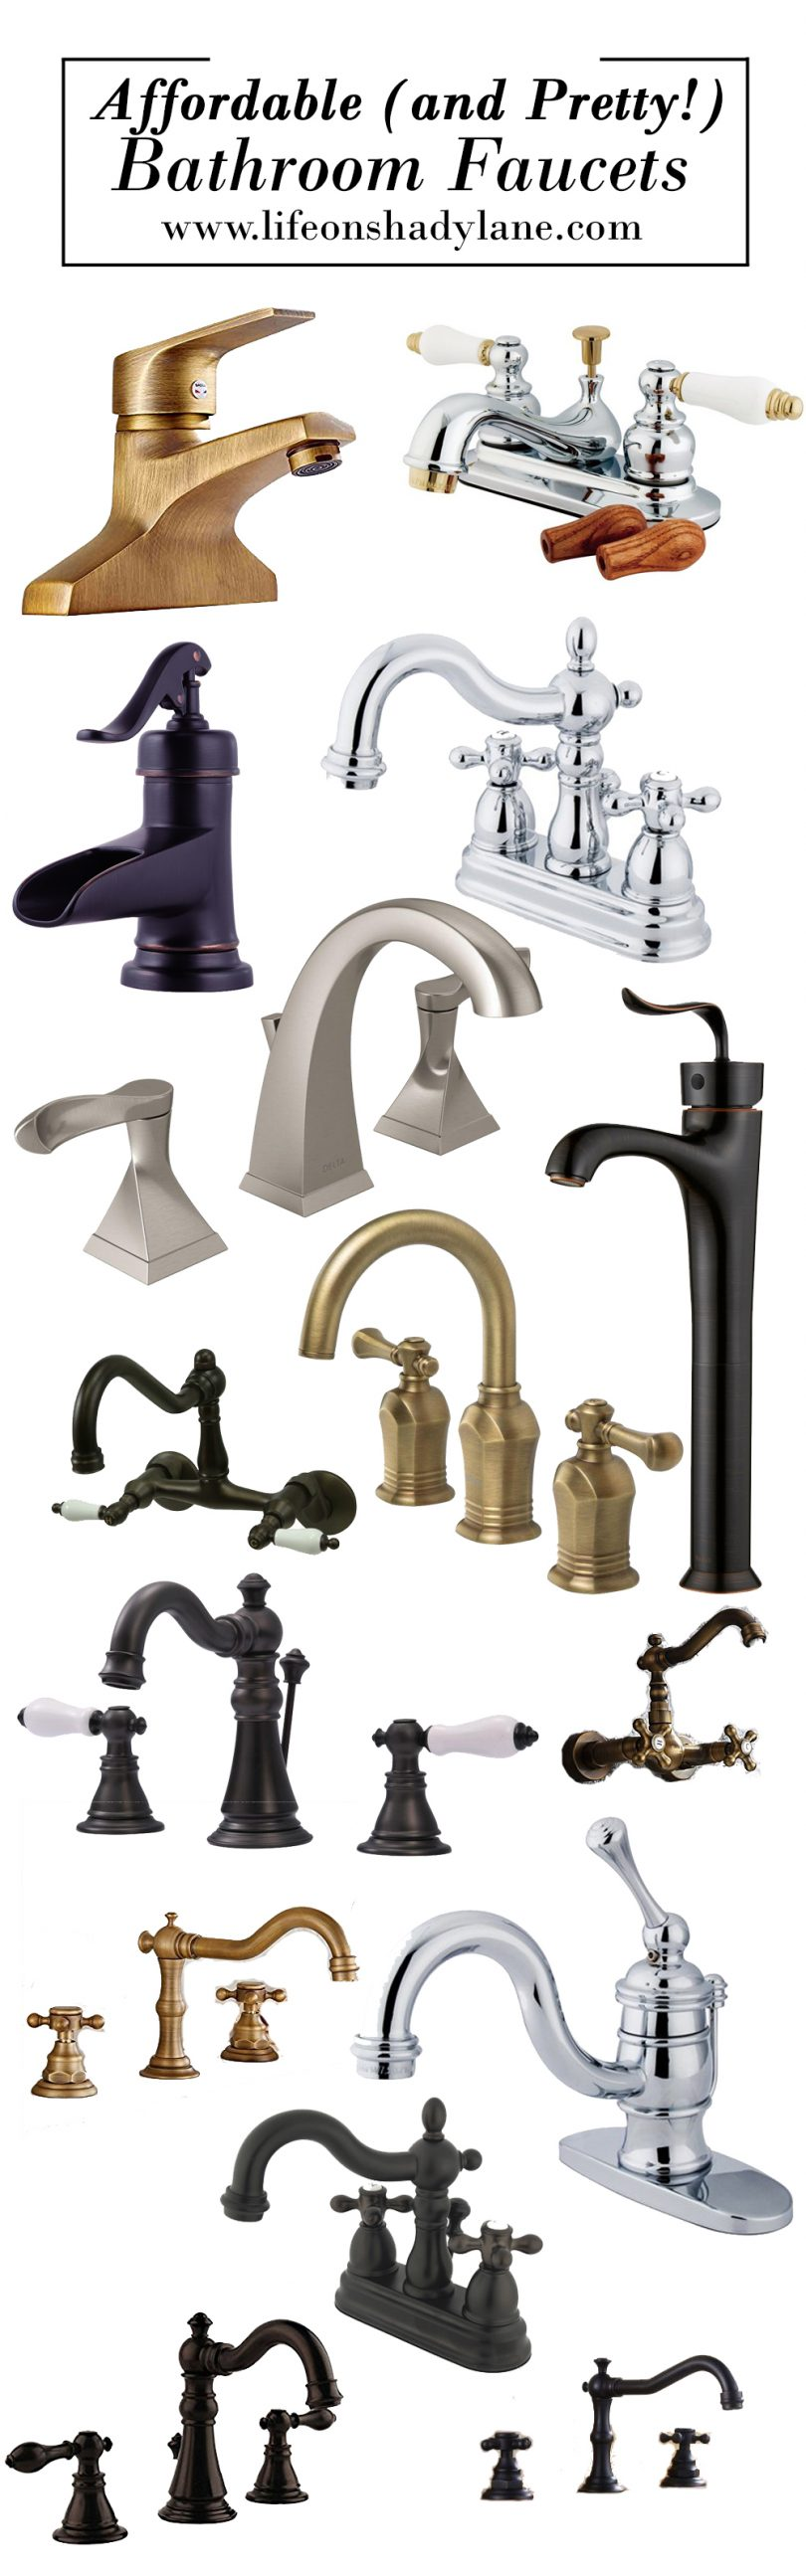 Affordable and Pretty Bathroom Faucets via Life on Shady Lane blog